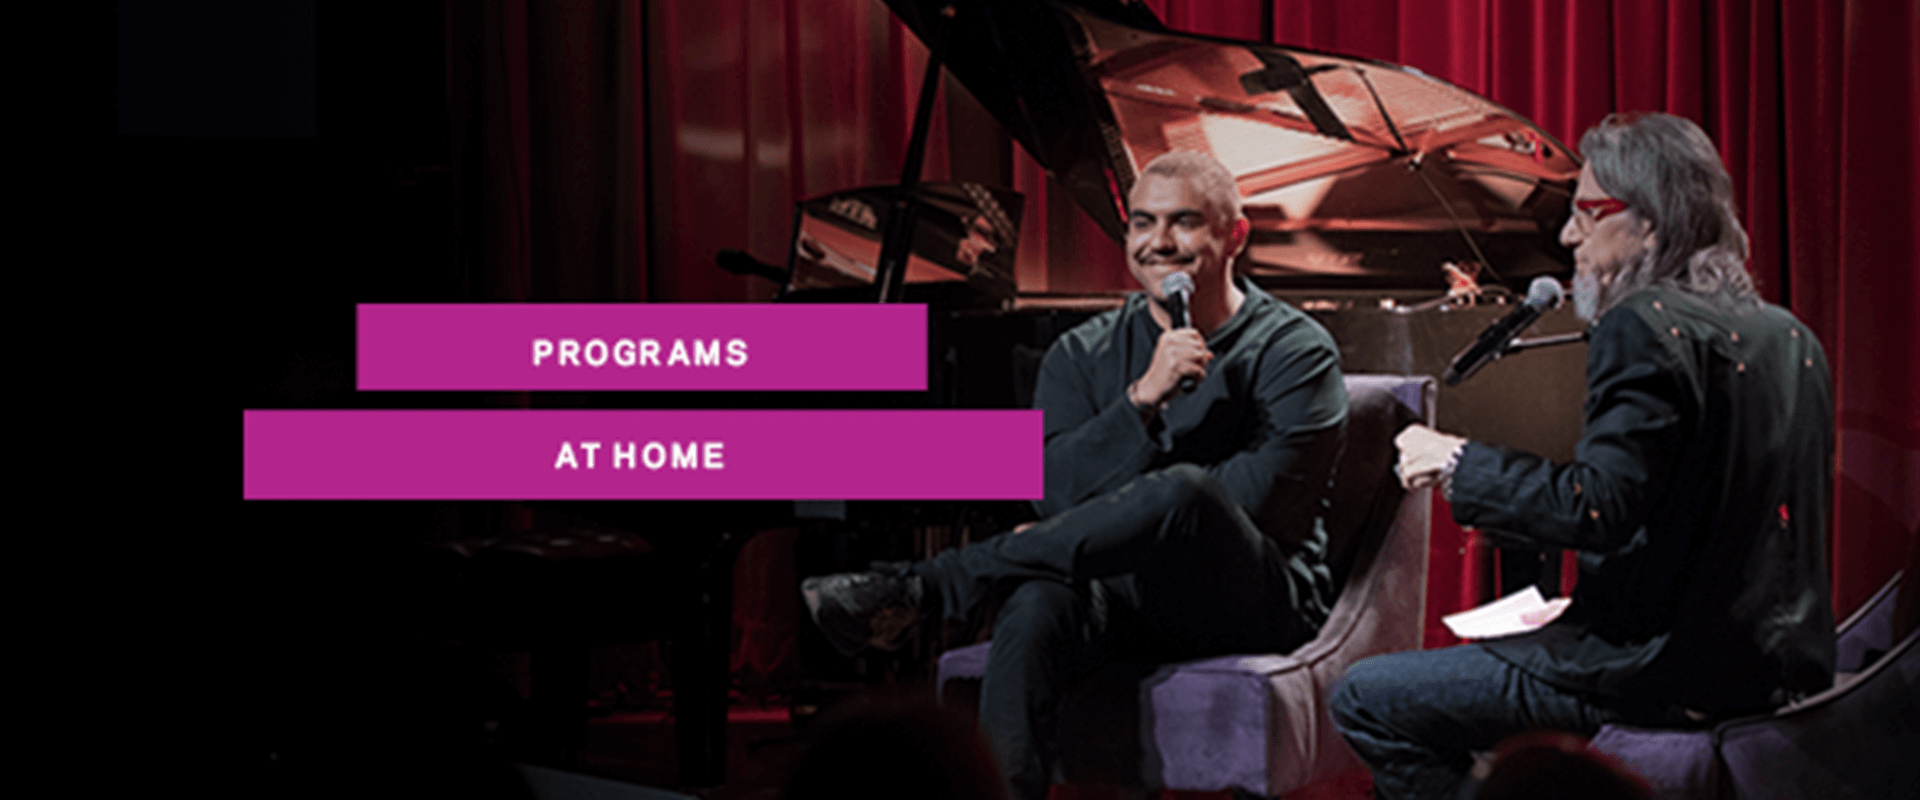 Public Programs At Home Release Schedule